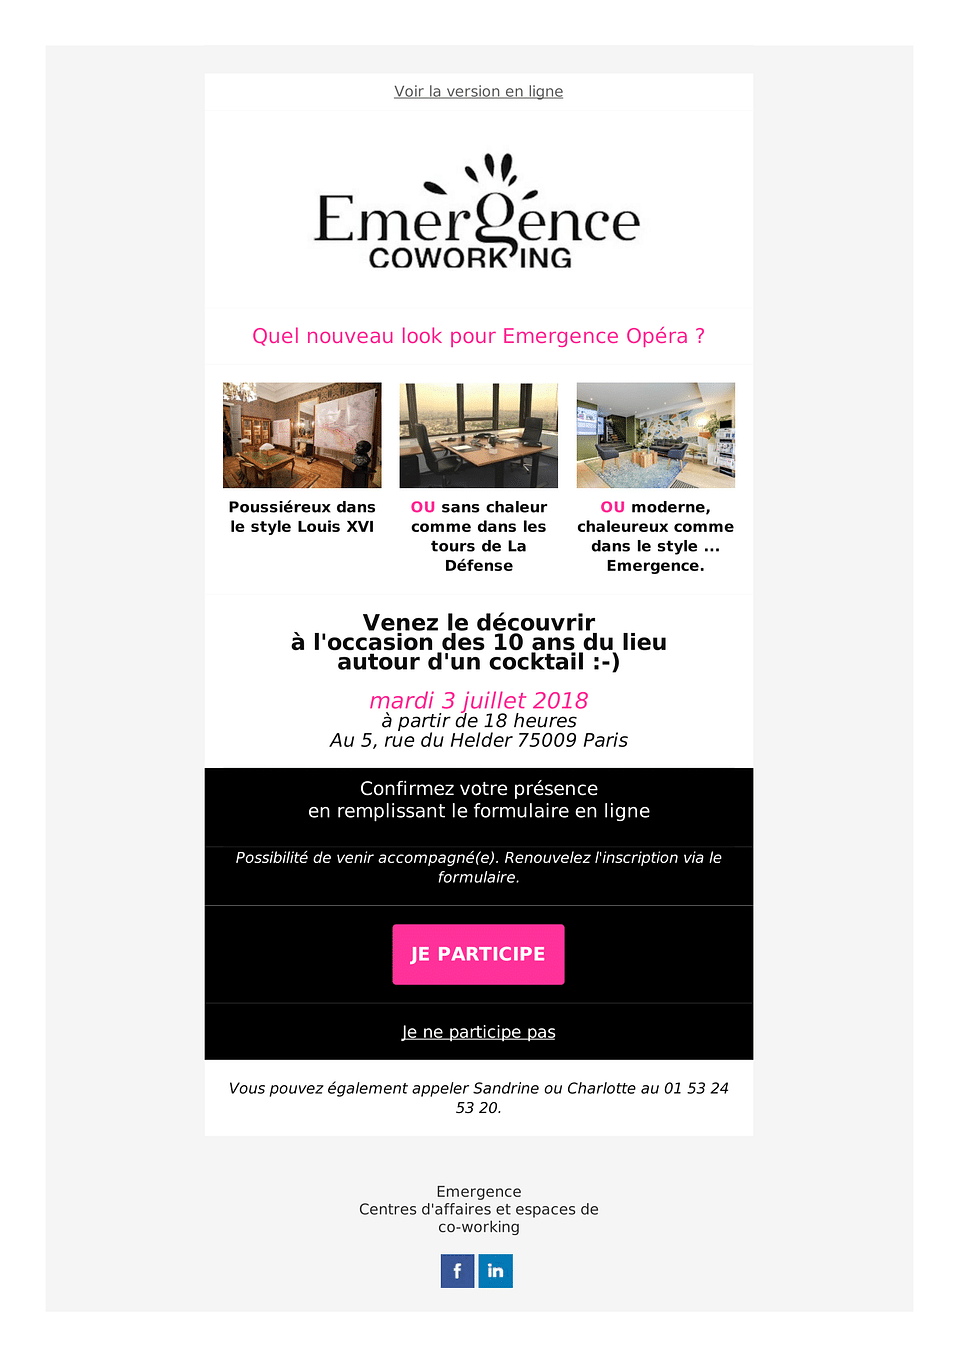 Campagnes email marketing pour Emergence